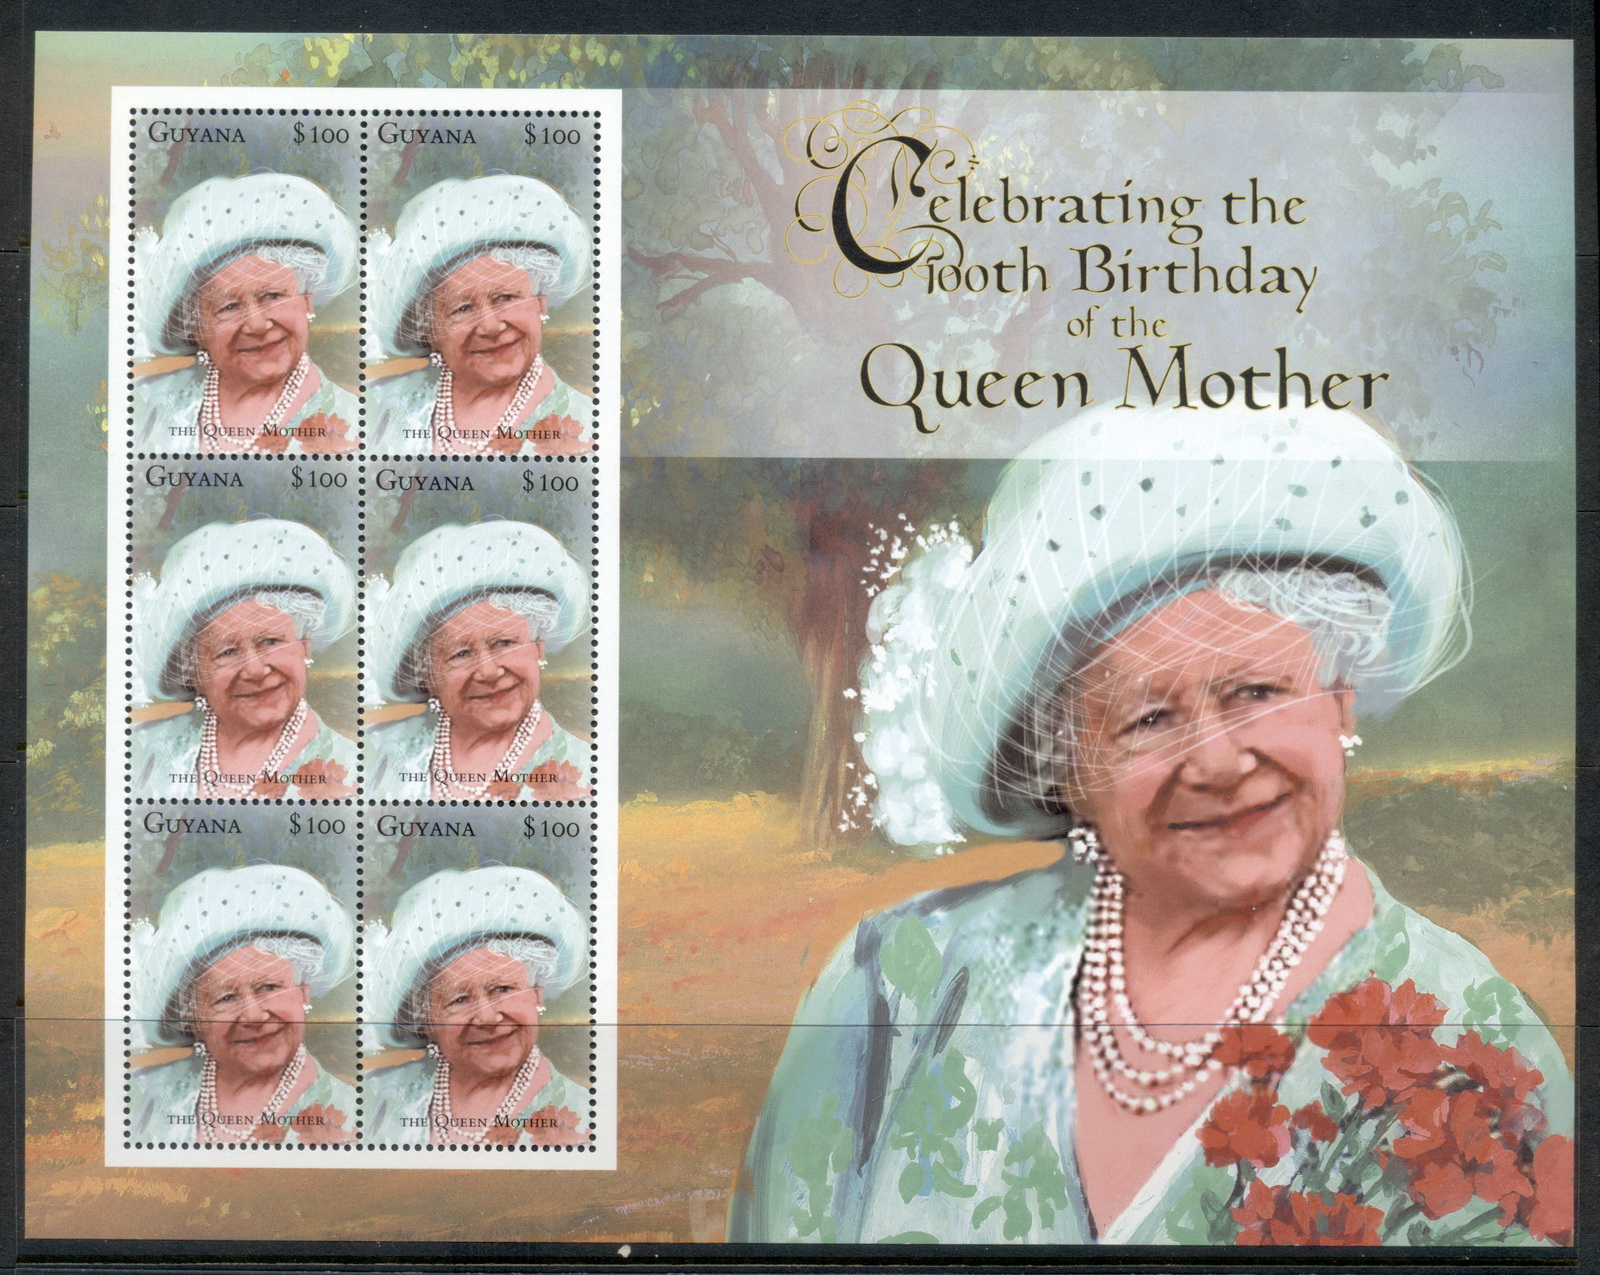 Guyana 2000 Queen Mother 100th Birthday MS MUH